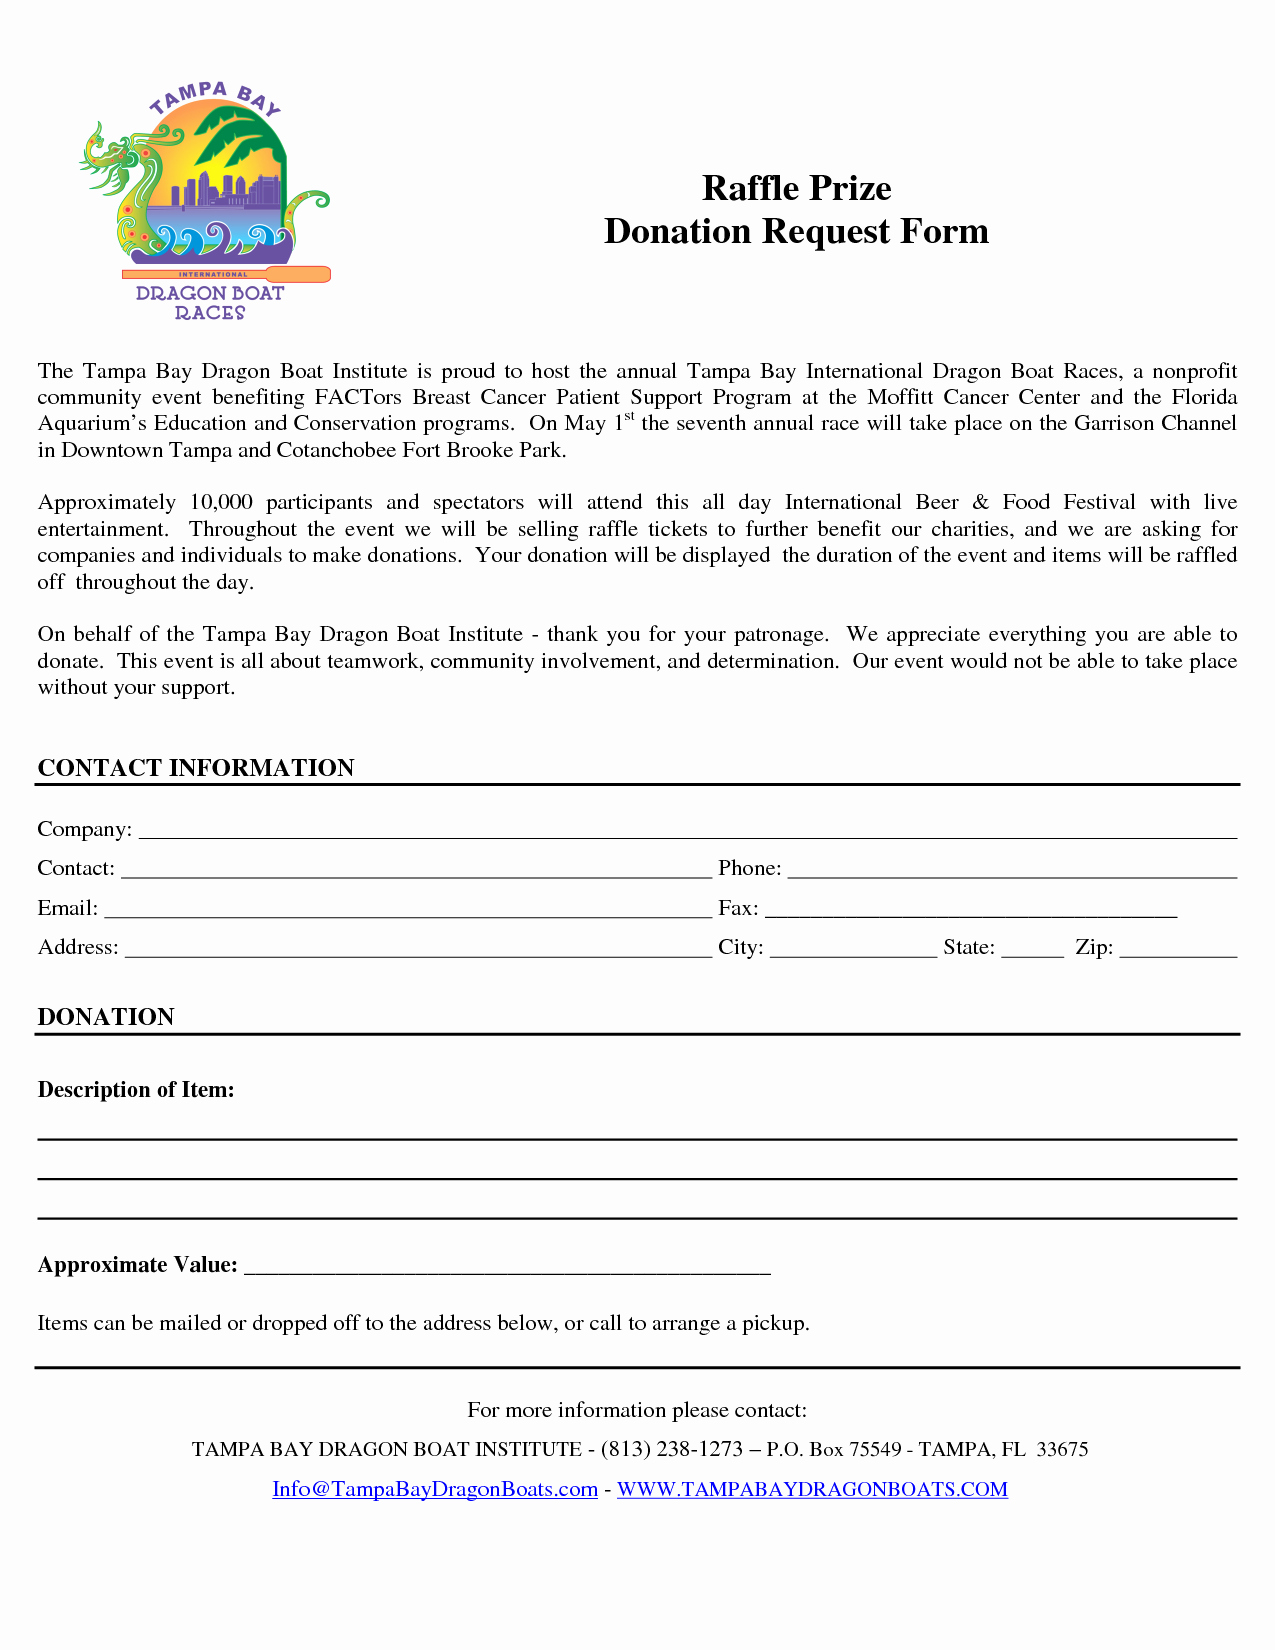 Donation Request forms Template Elegant Raffle Prize Donation Request form by Ttn